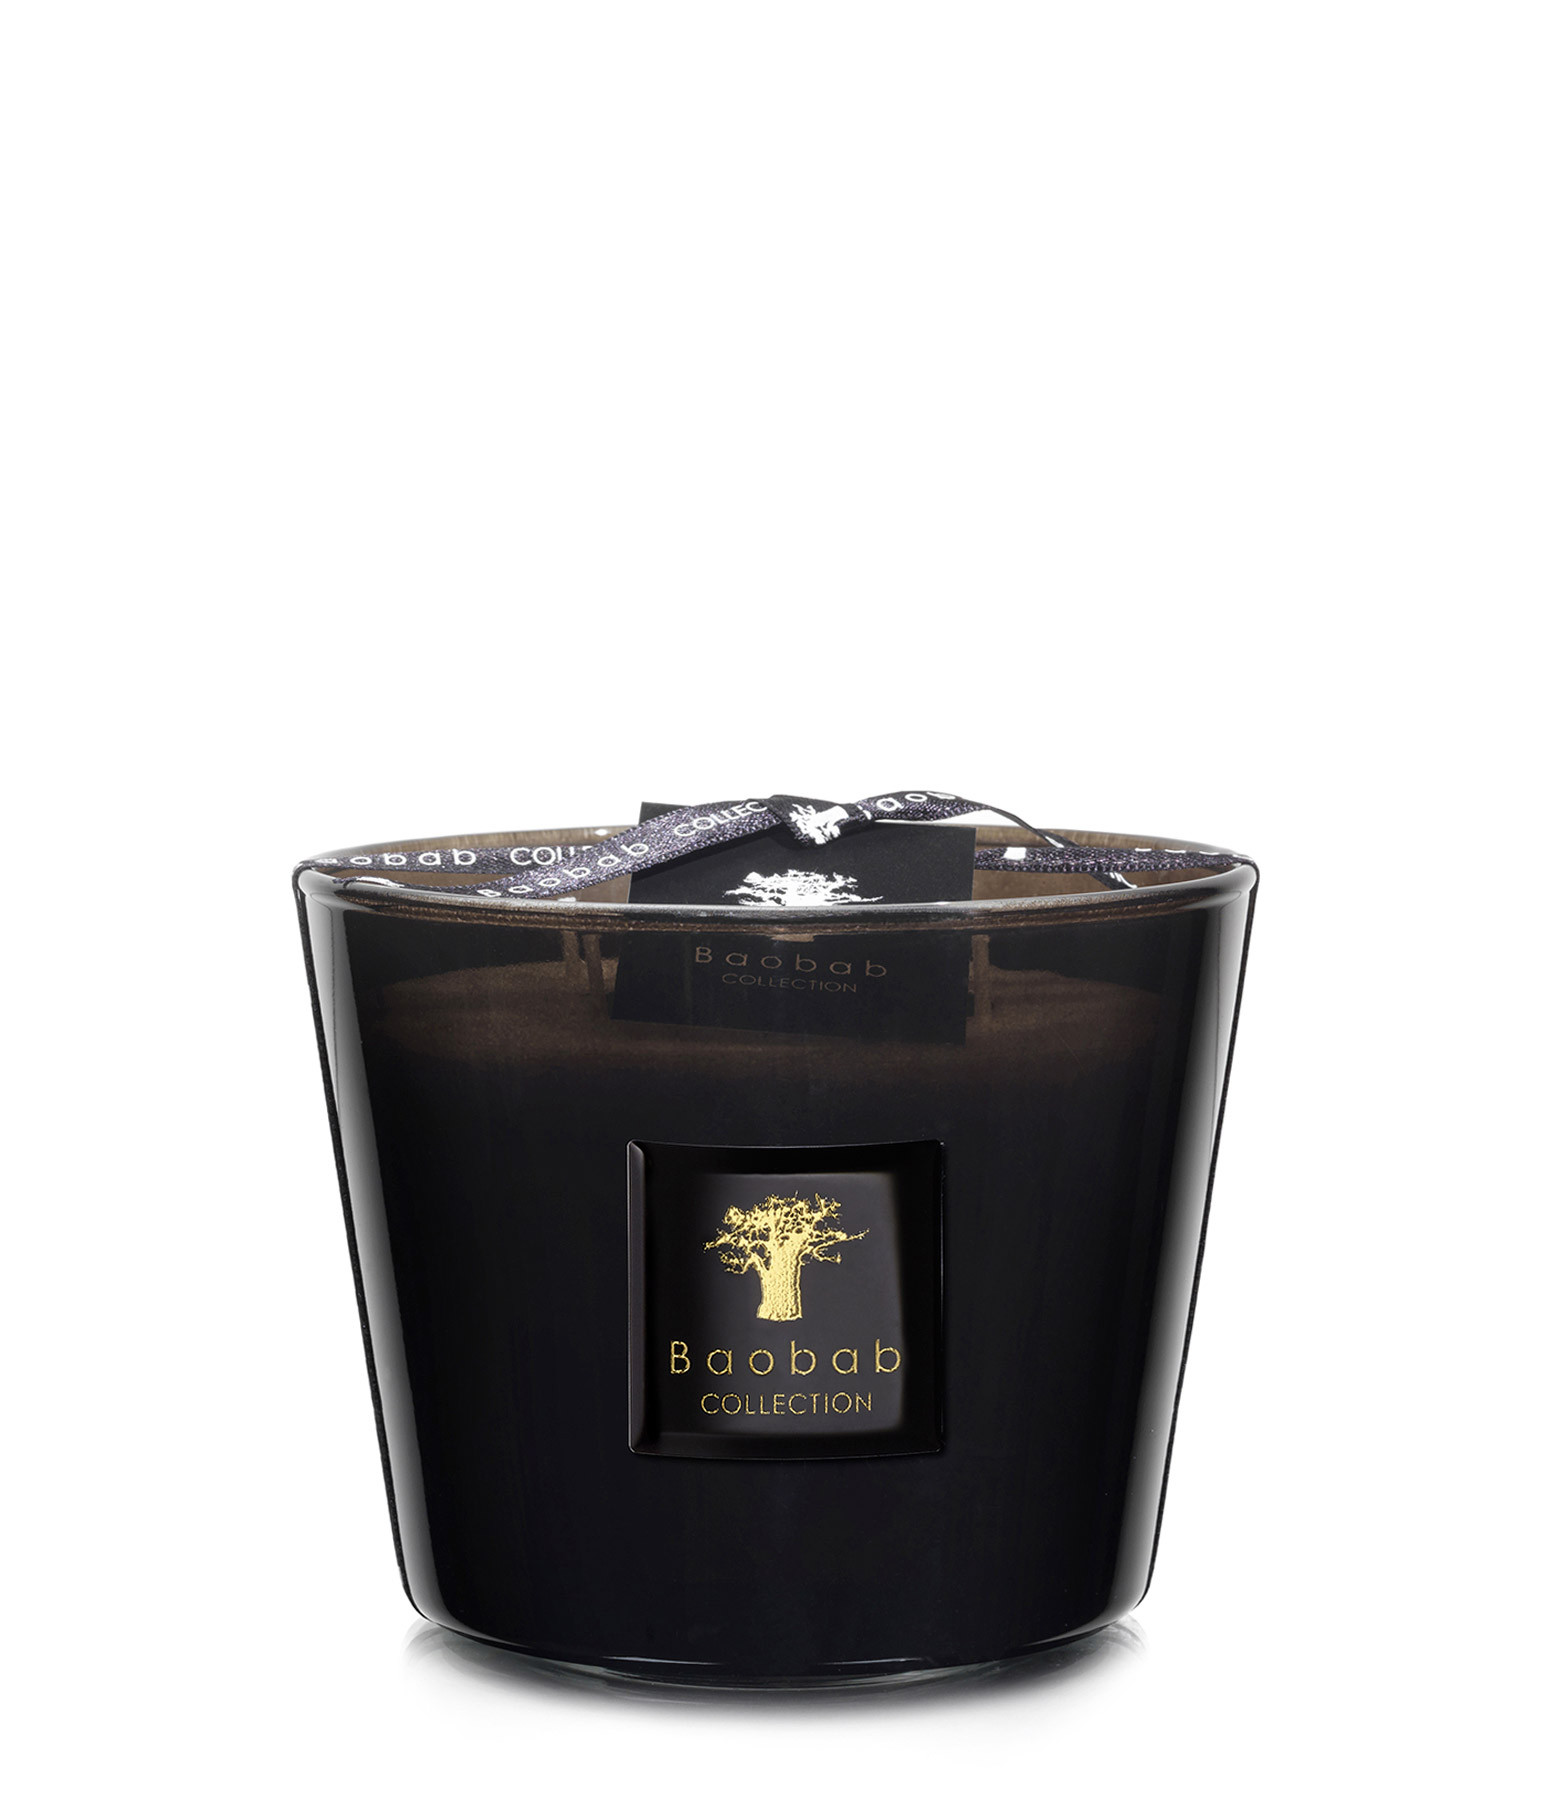 BAOBAB COLLECTION - Bougie Max 10 Prestigieuses Encre de Chine